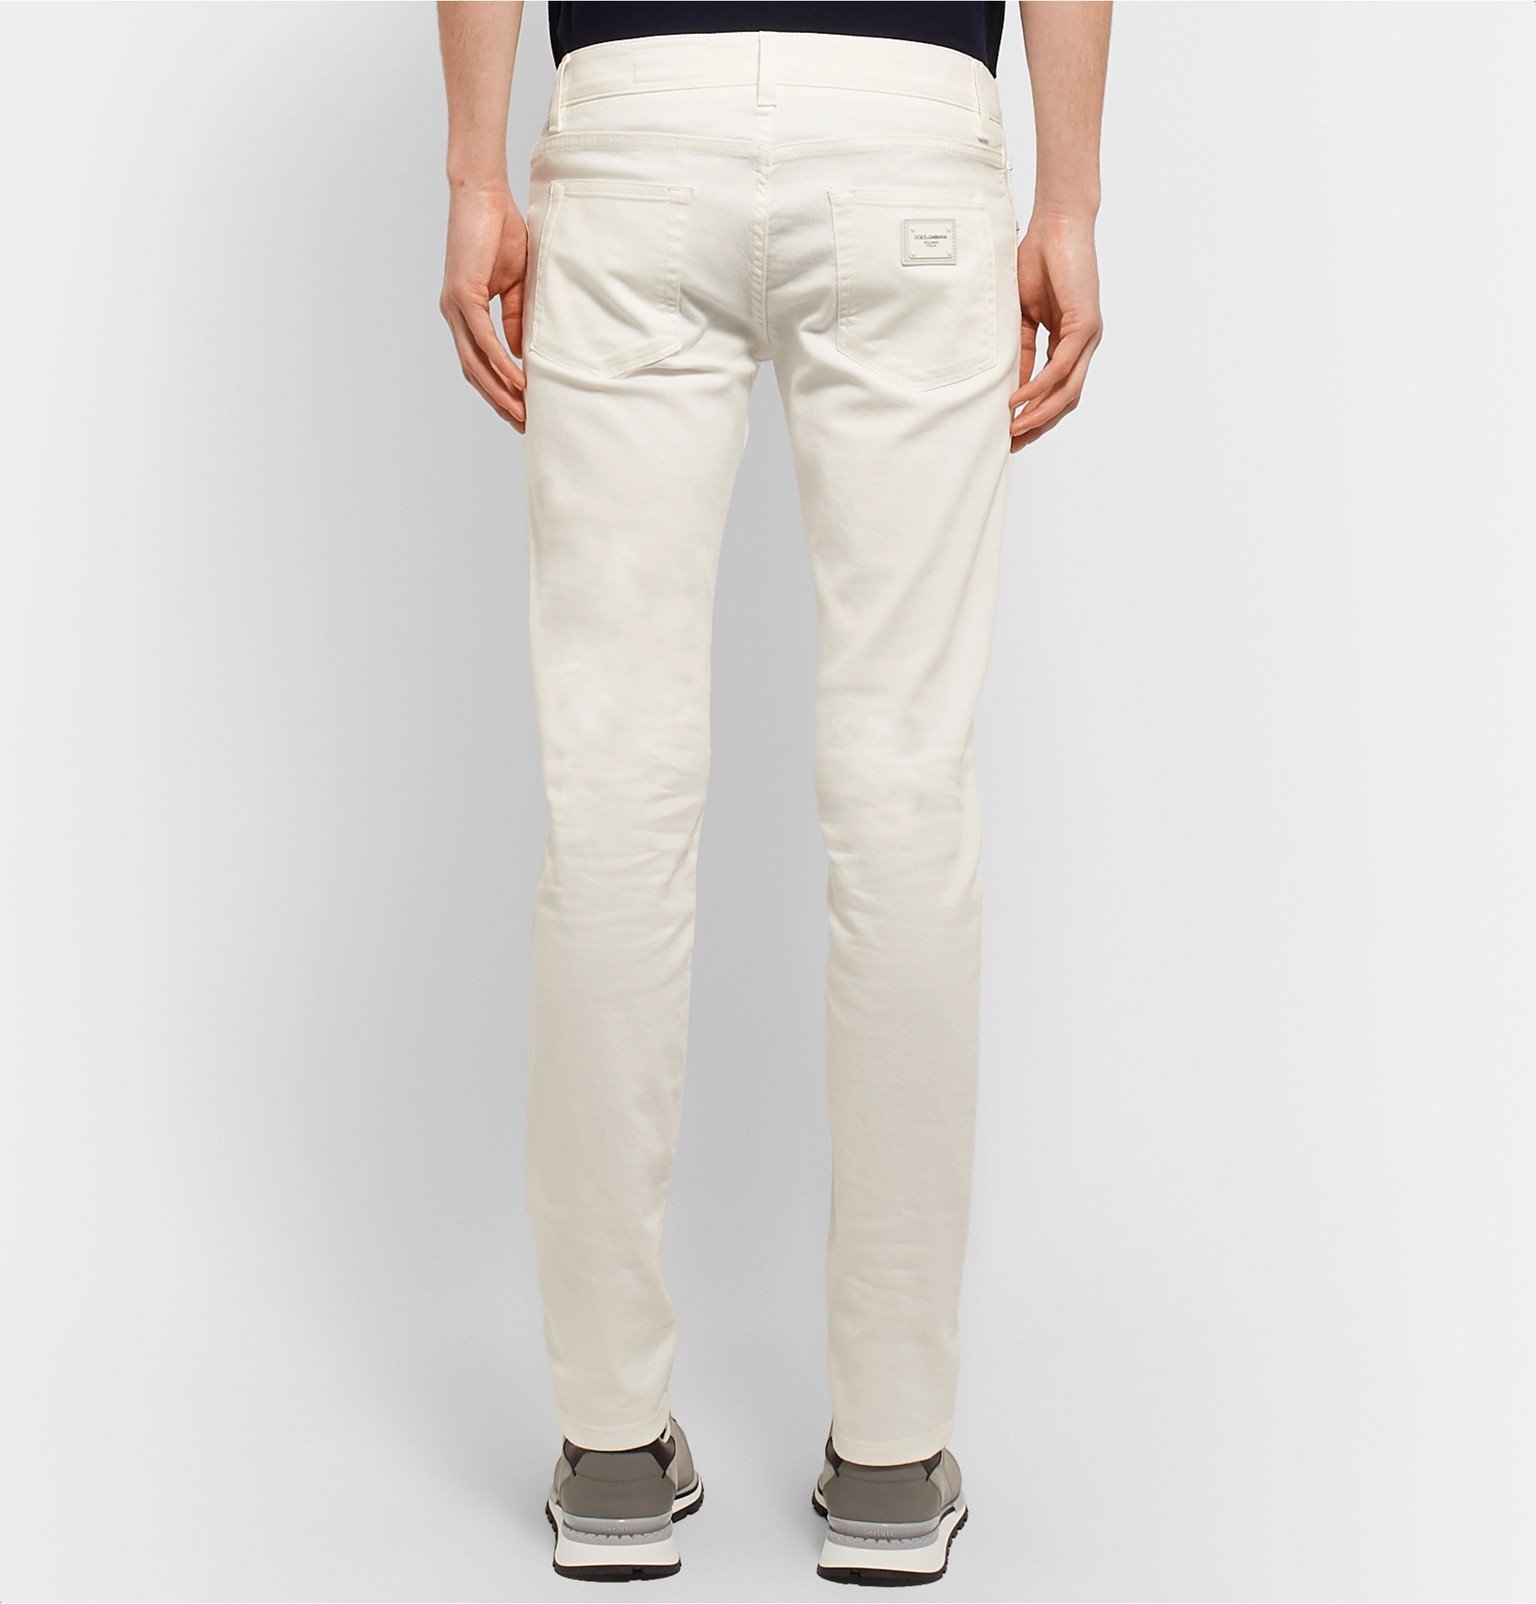 Dolce & Gabbana - Skinny-Fit Stretch-Denim Jeans - White